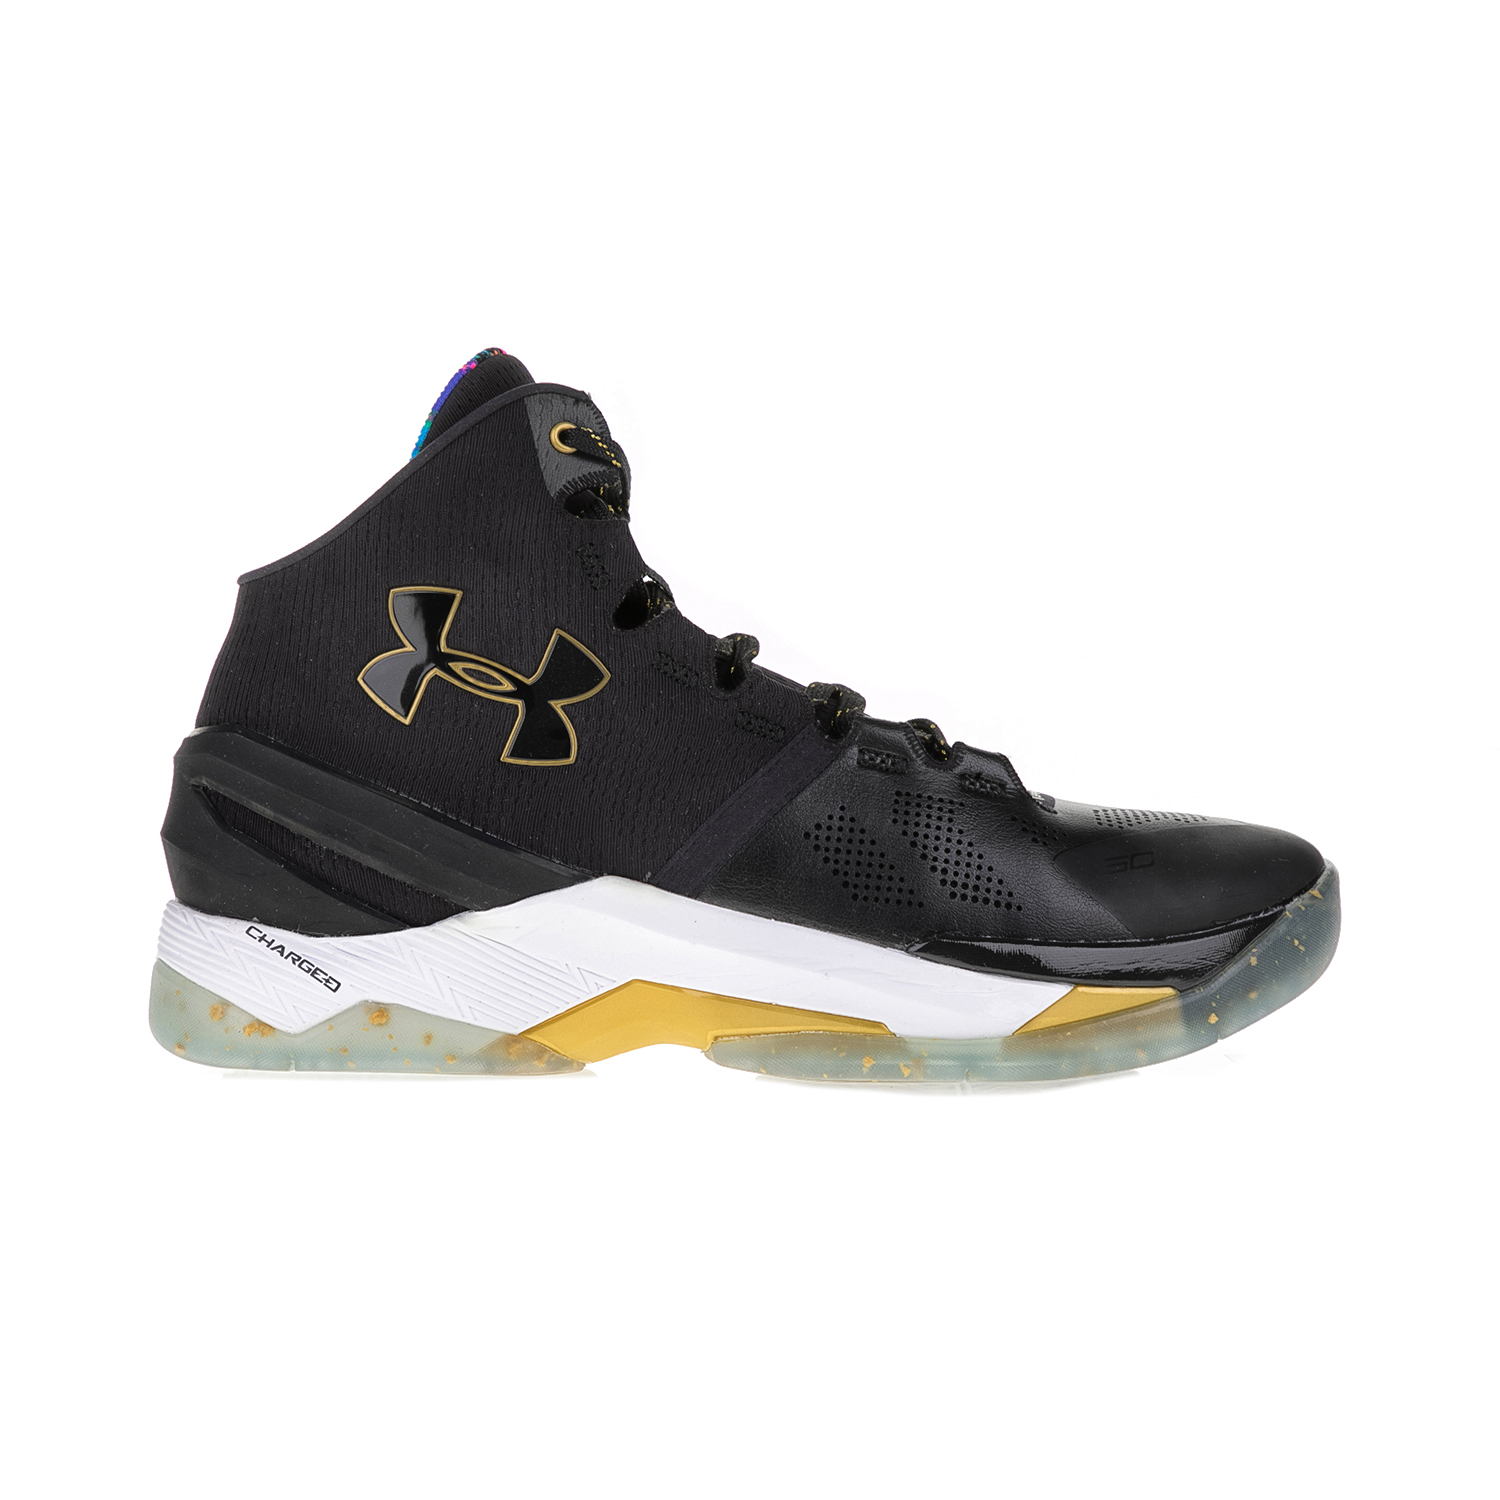 eff4c753821c UNDER ARMOUR – Ανδρικά παπούτσια μπάσκετ UNDER ARMOUR CURRY 2 LE μαύρα